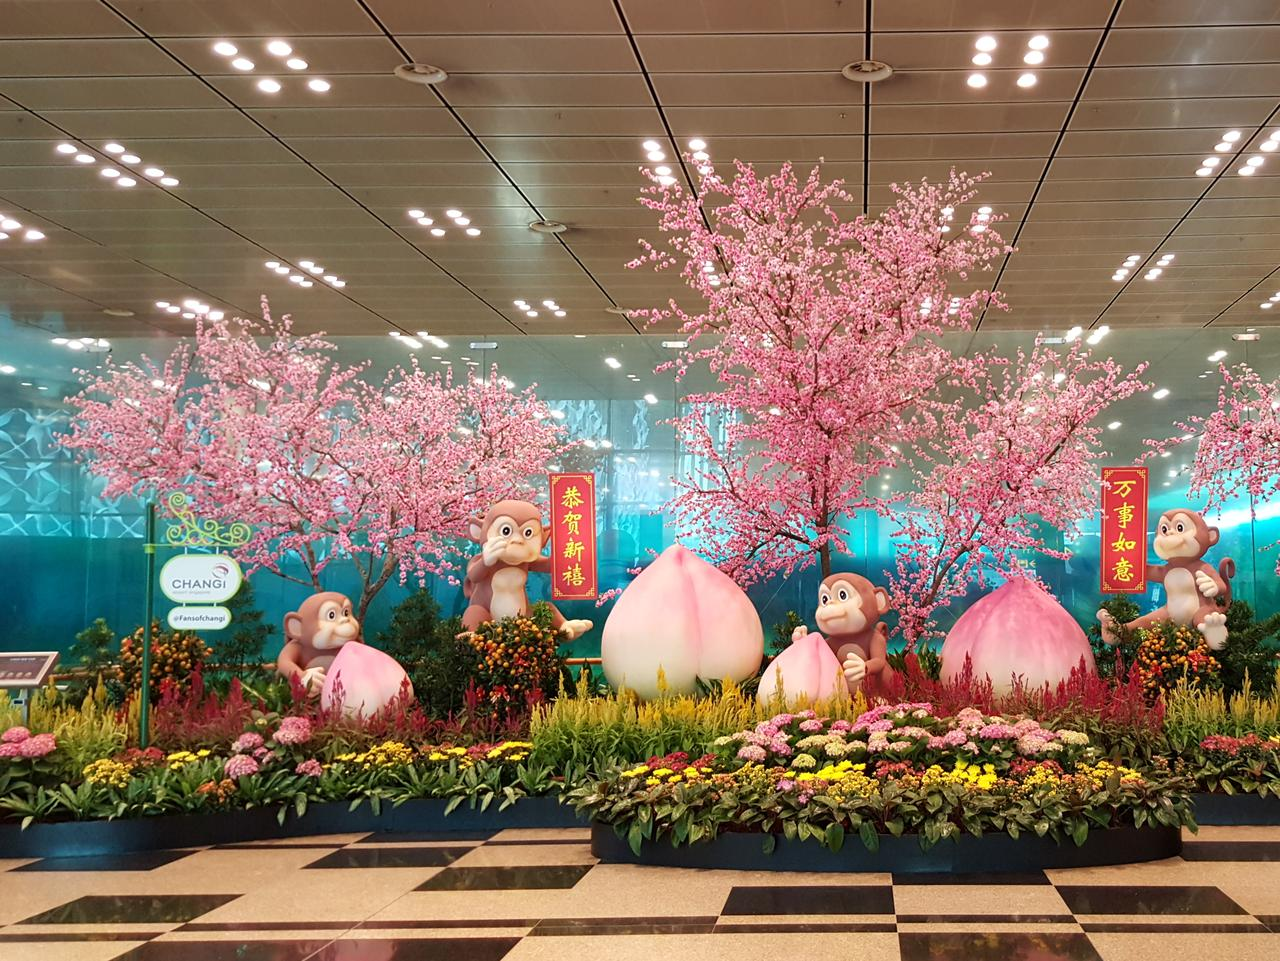 Singapore's Changi Airport features real plants and flowers blooming all year round.